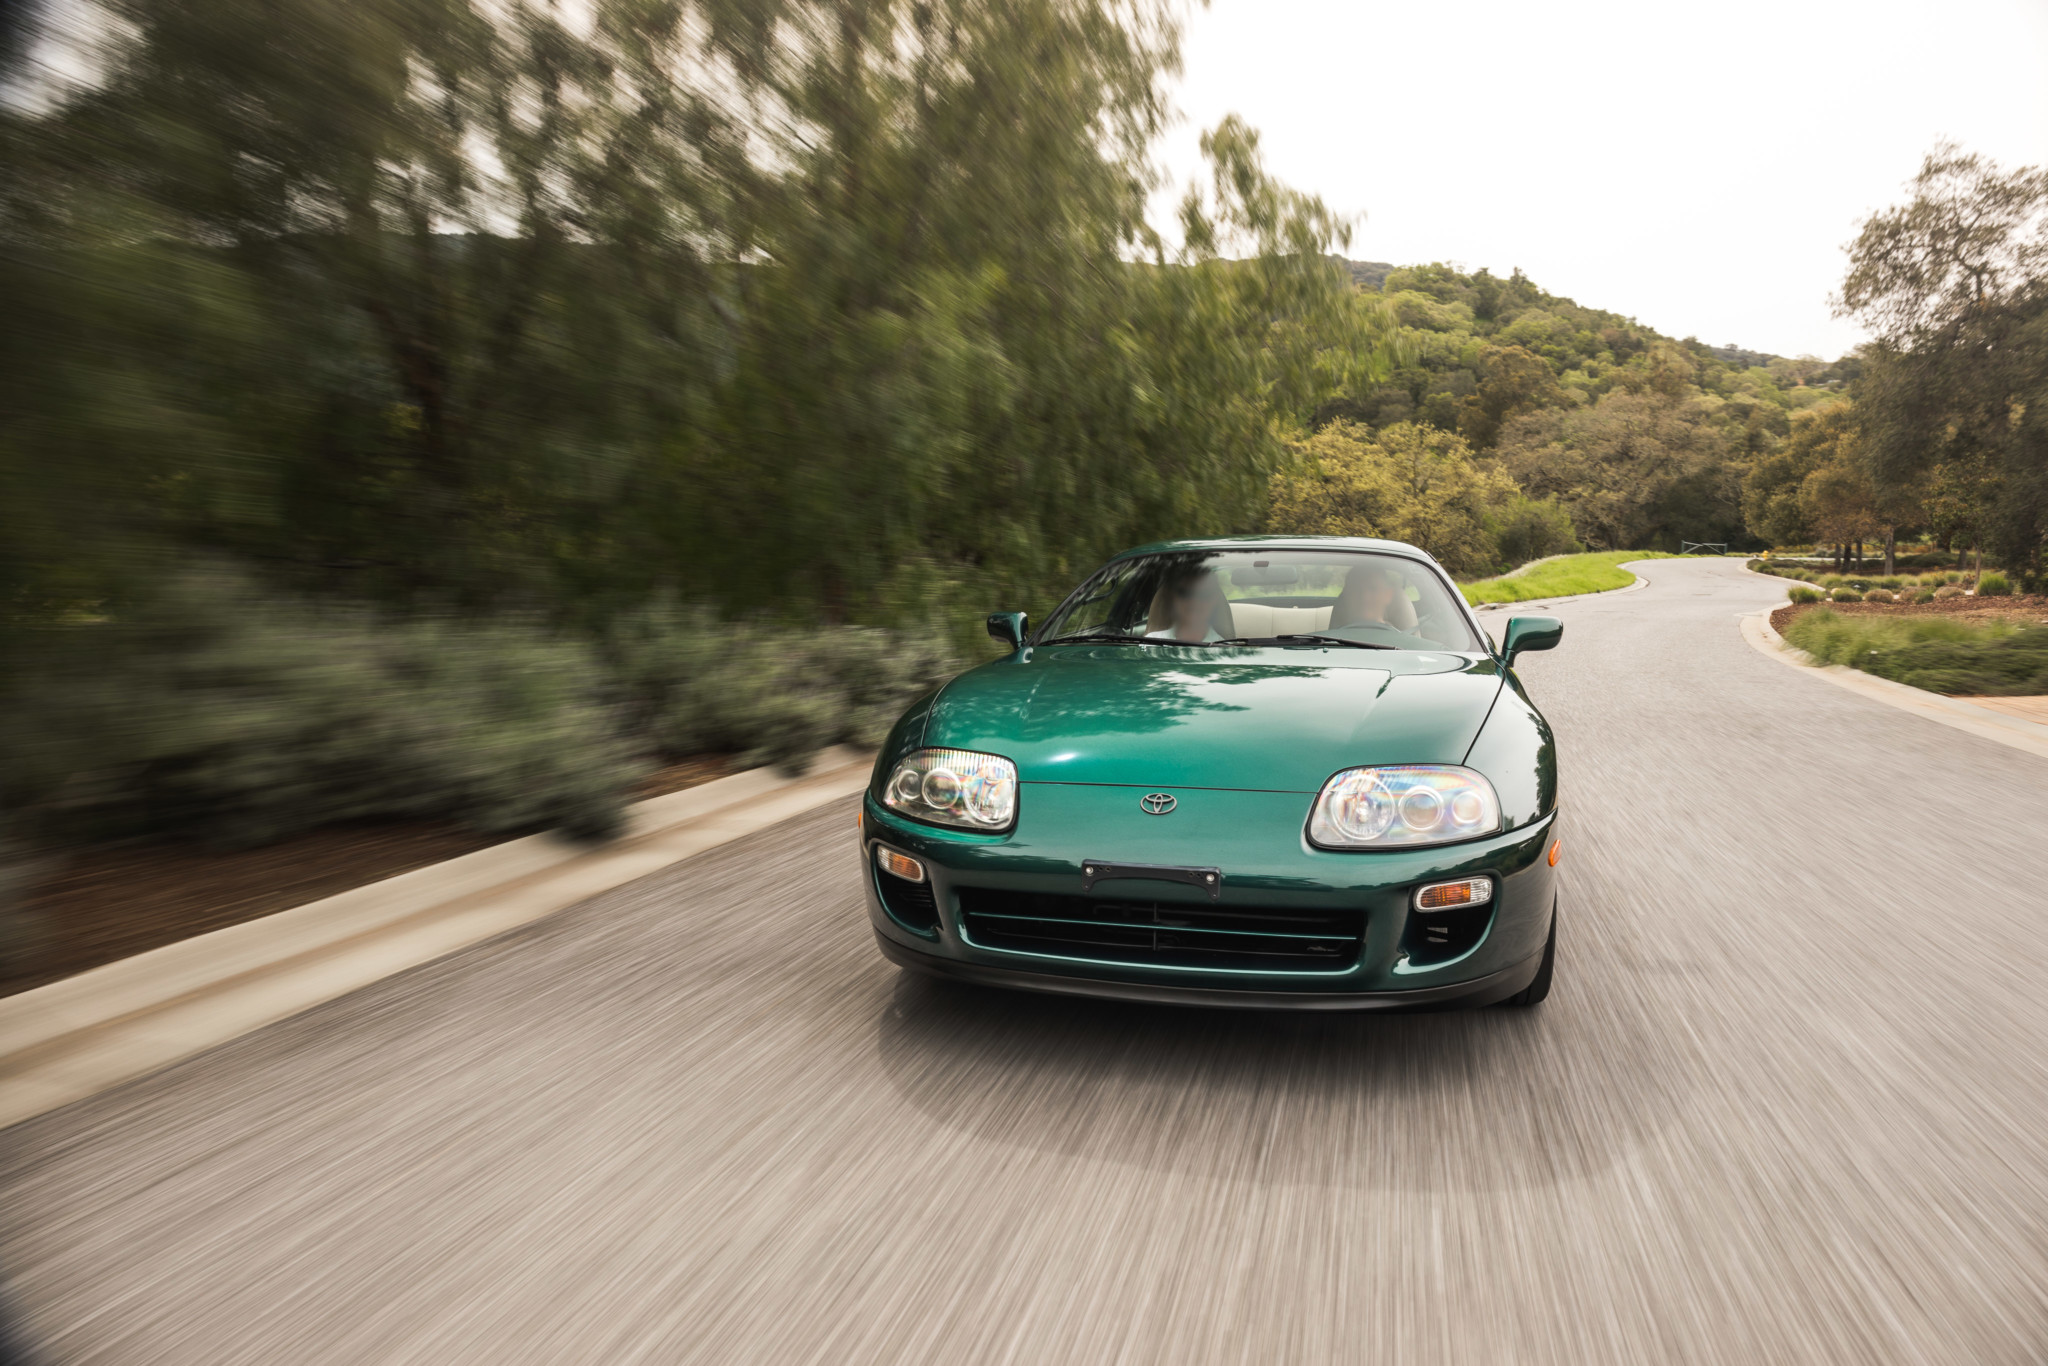 Toyota-Supra-Twin-Turbo-1997-sale-8